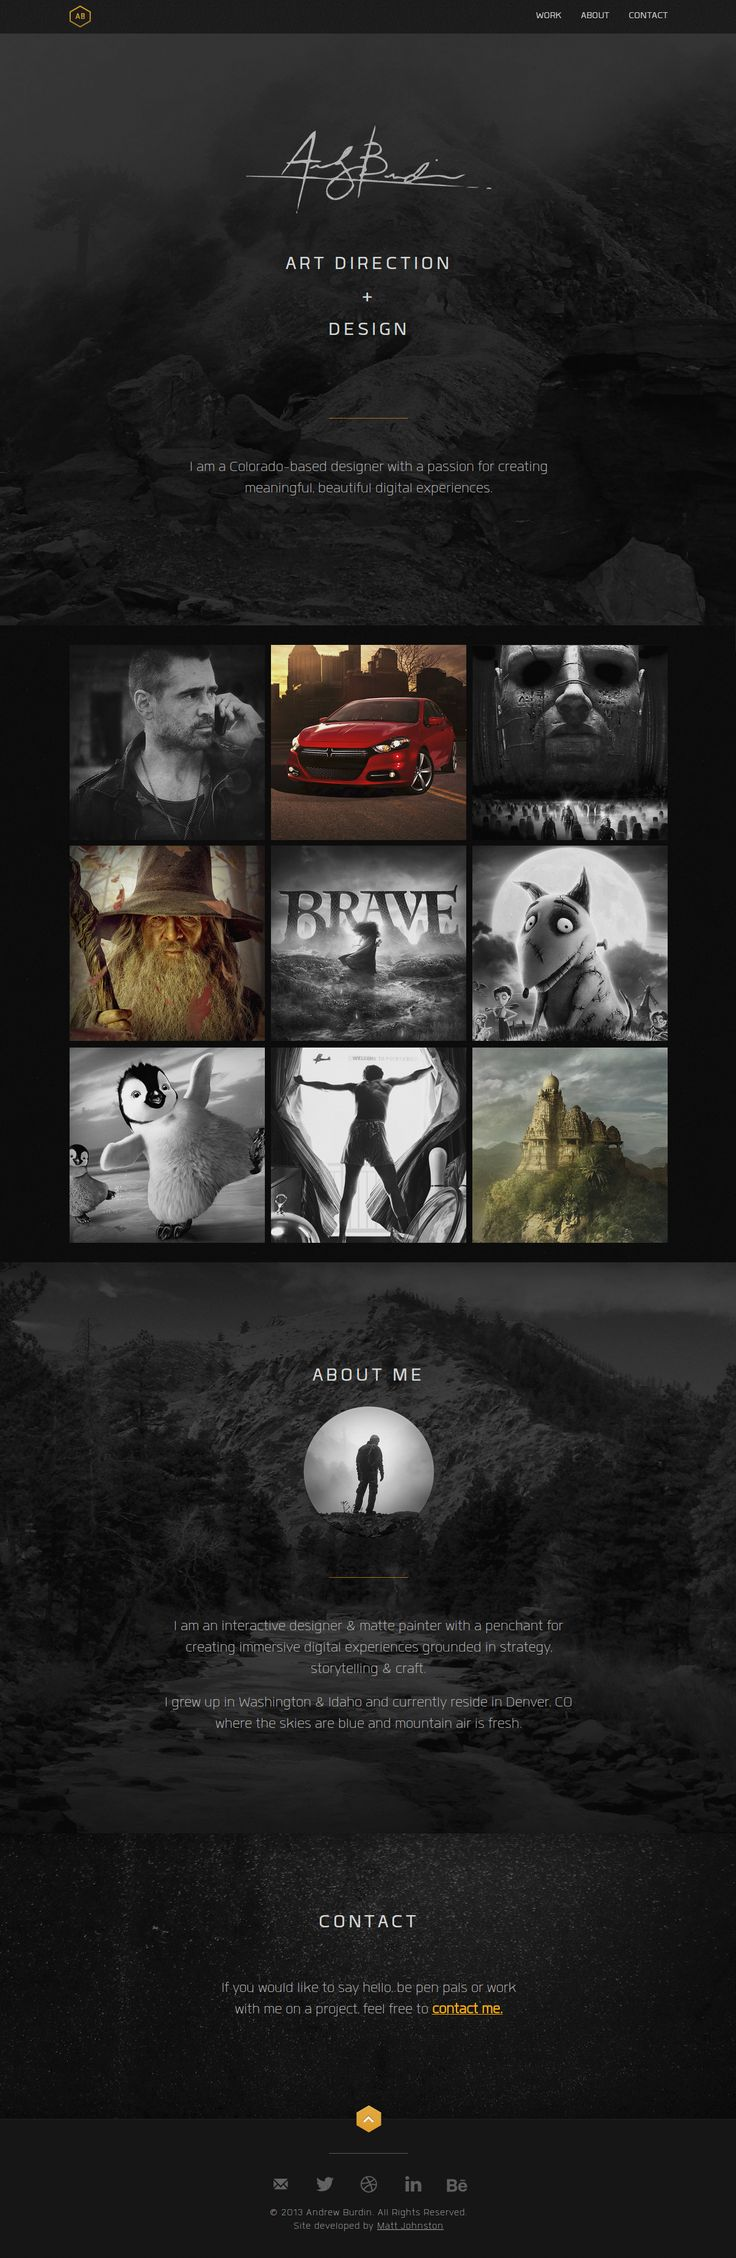 Andrew Burdin. Cool and simple portfolio site. #webdesign #design #portfolio